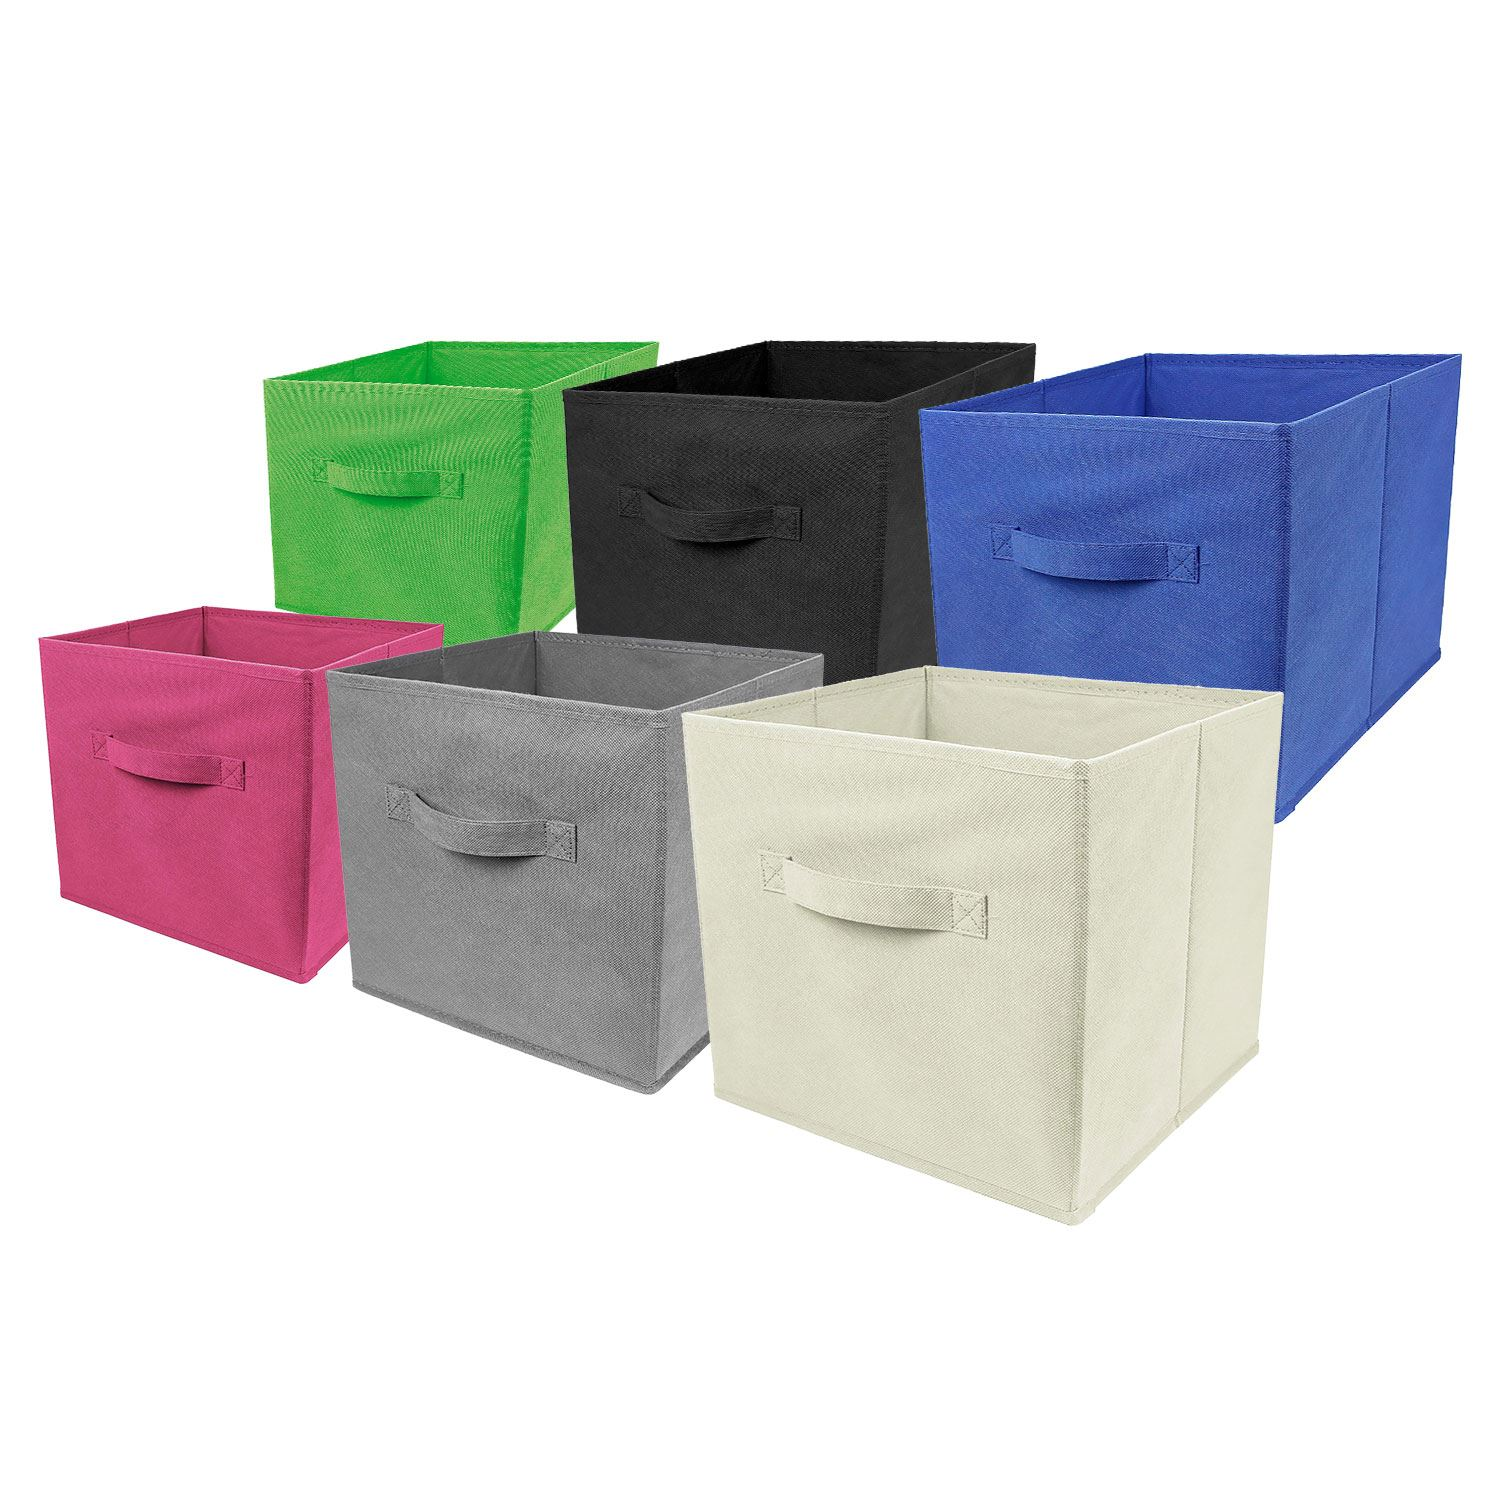 Genial 2 Pack Foldable Storage Cubes. Image Result For Mobile Responsive Images